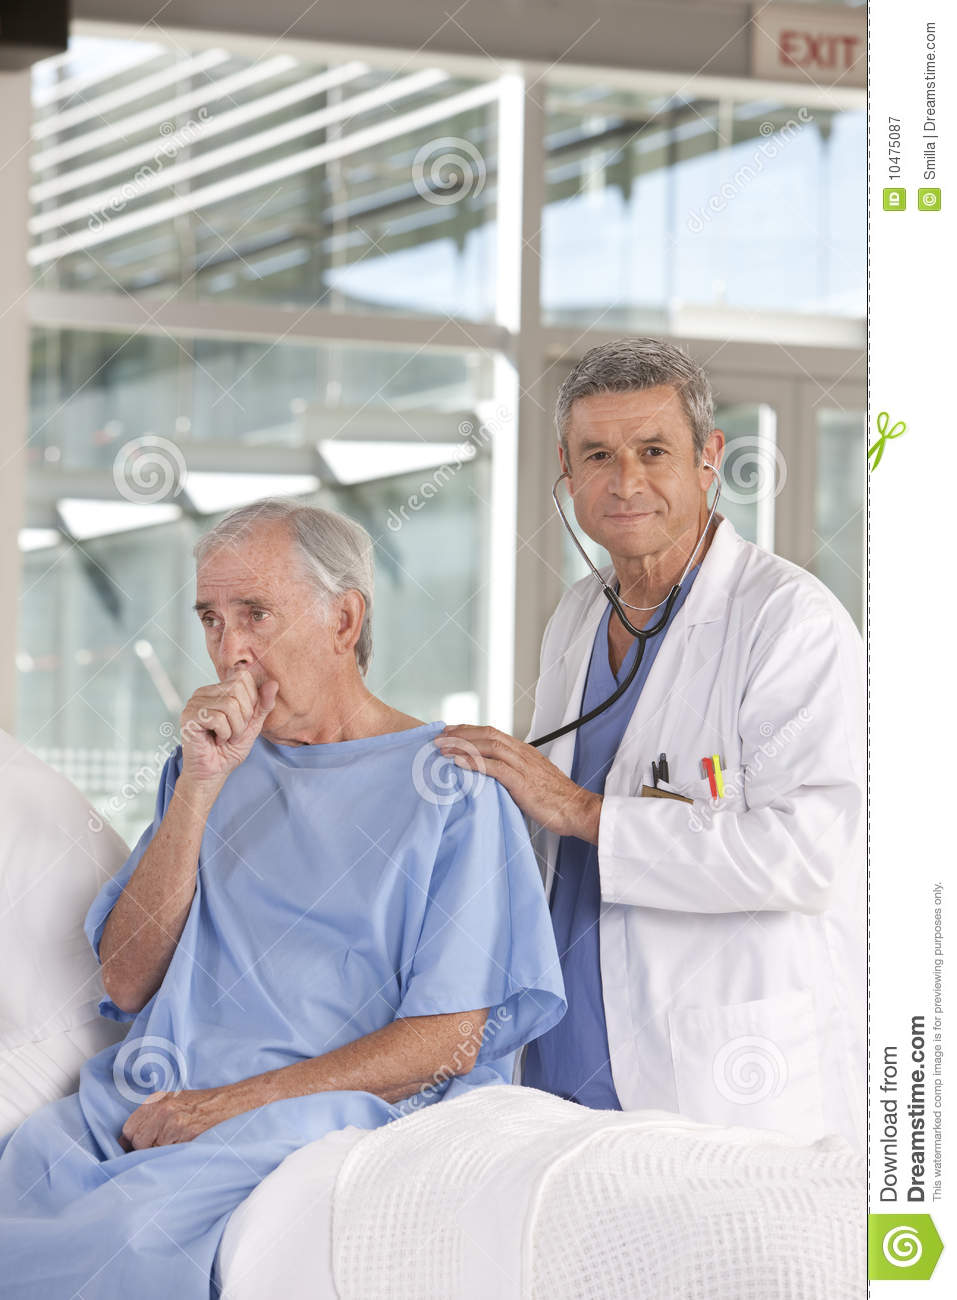 A patient takes two cocks in original 9